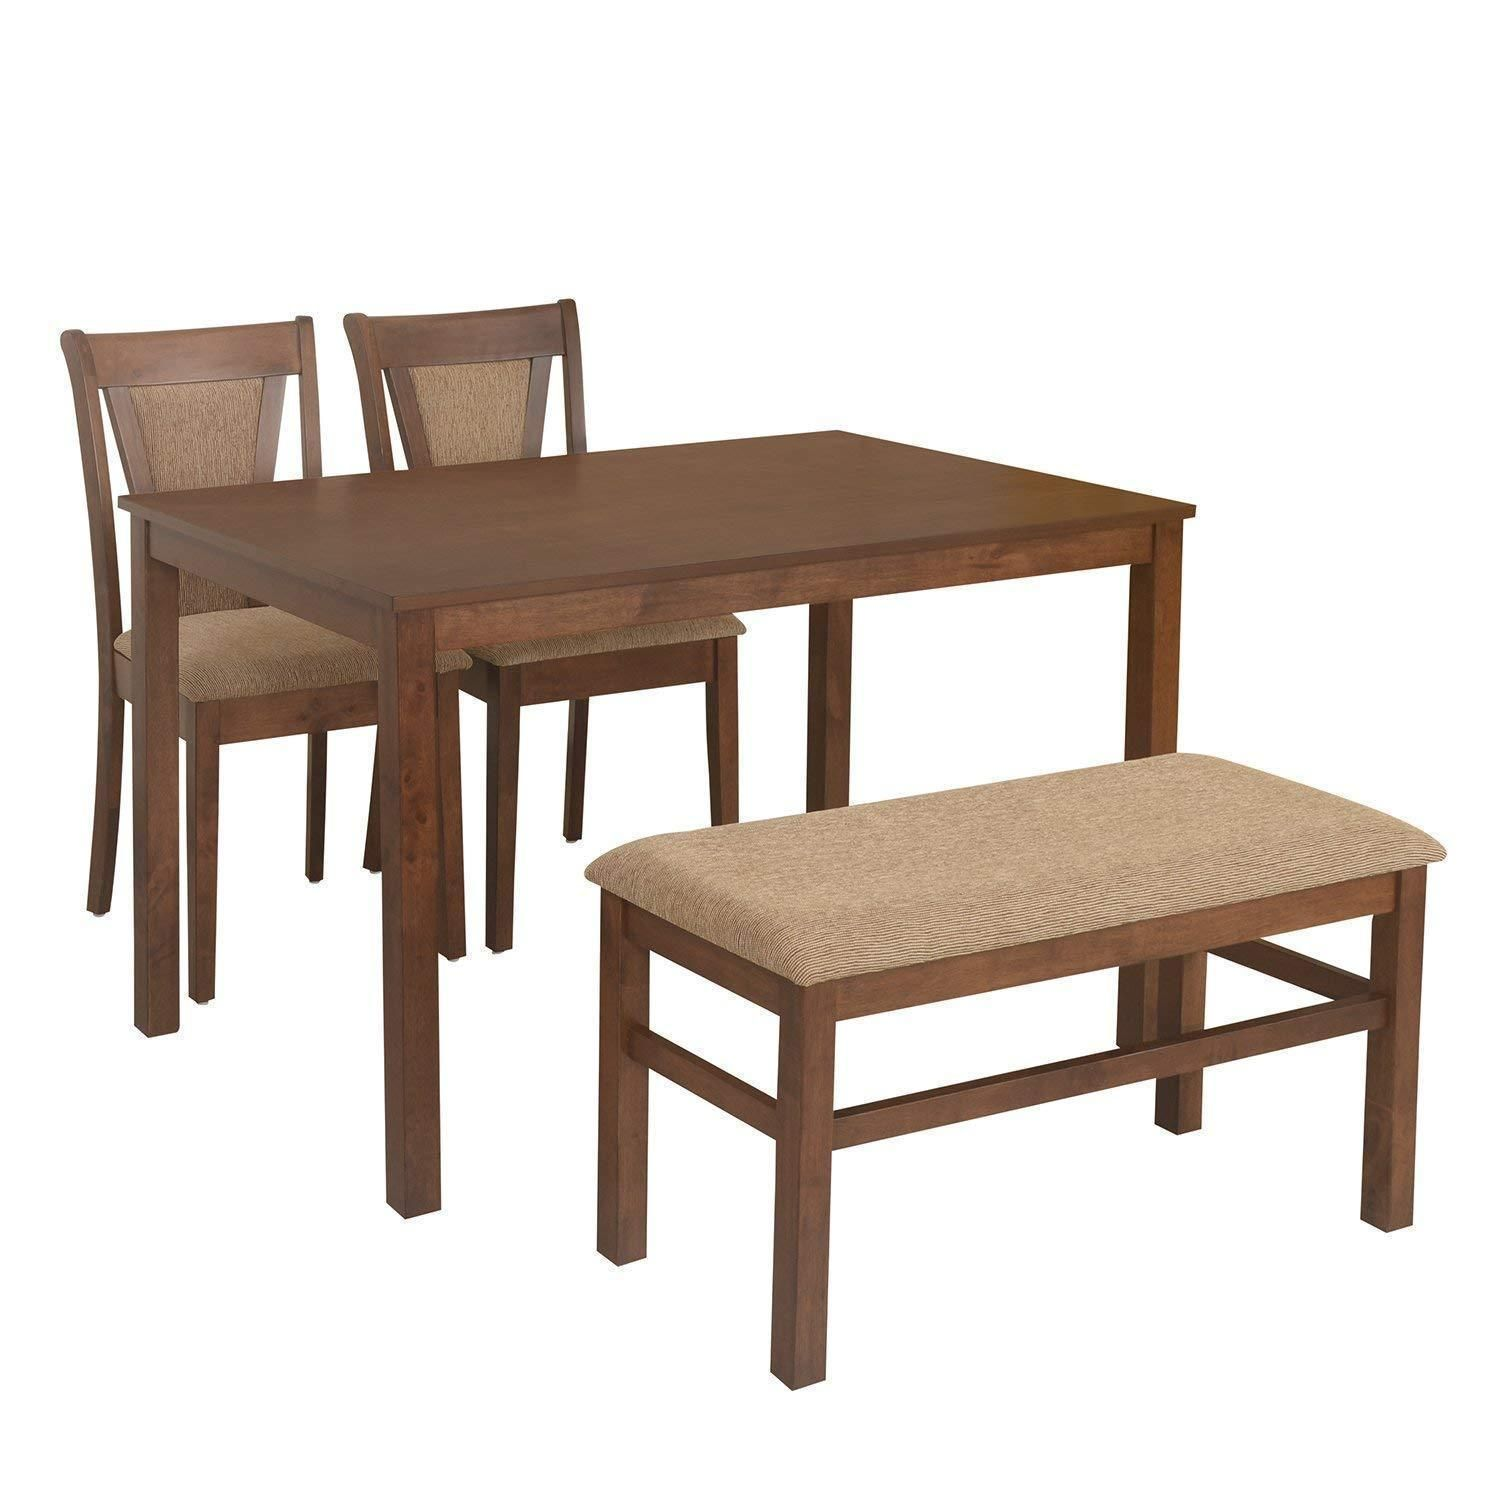 Insignia Jewel 4 Seater Dining Table Set (Walnut) #techlaunches #buyatwebsite # ...